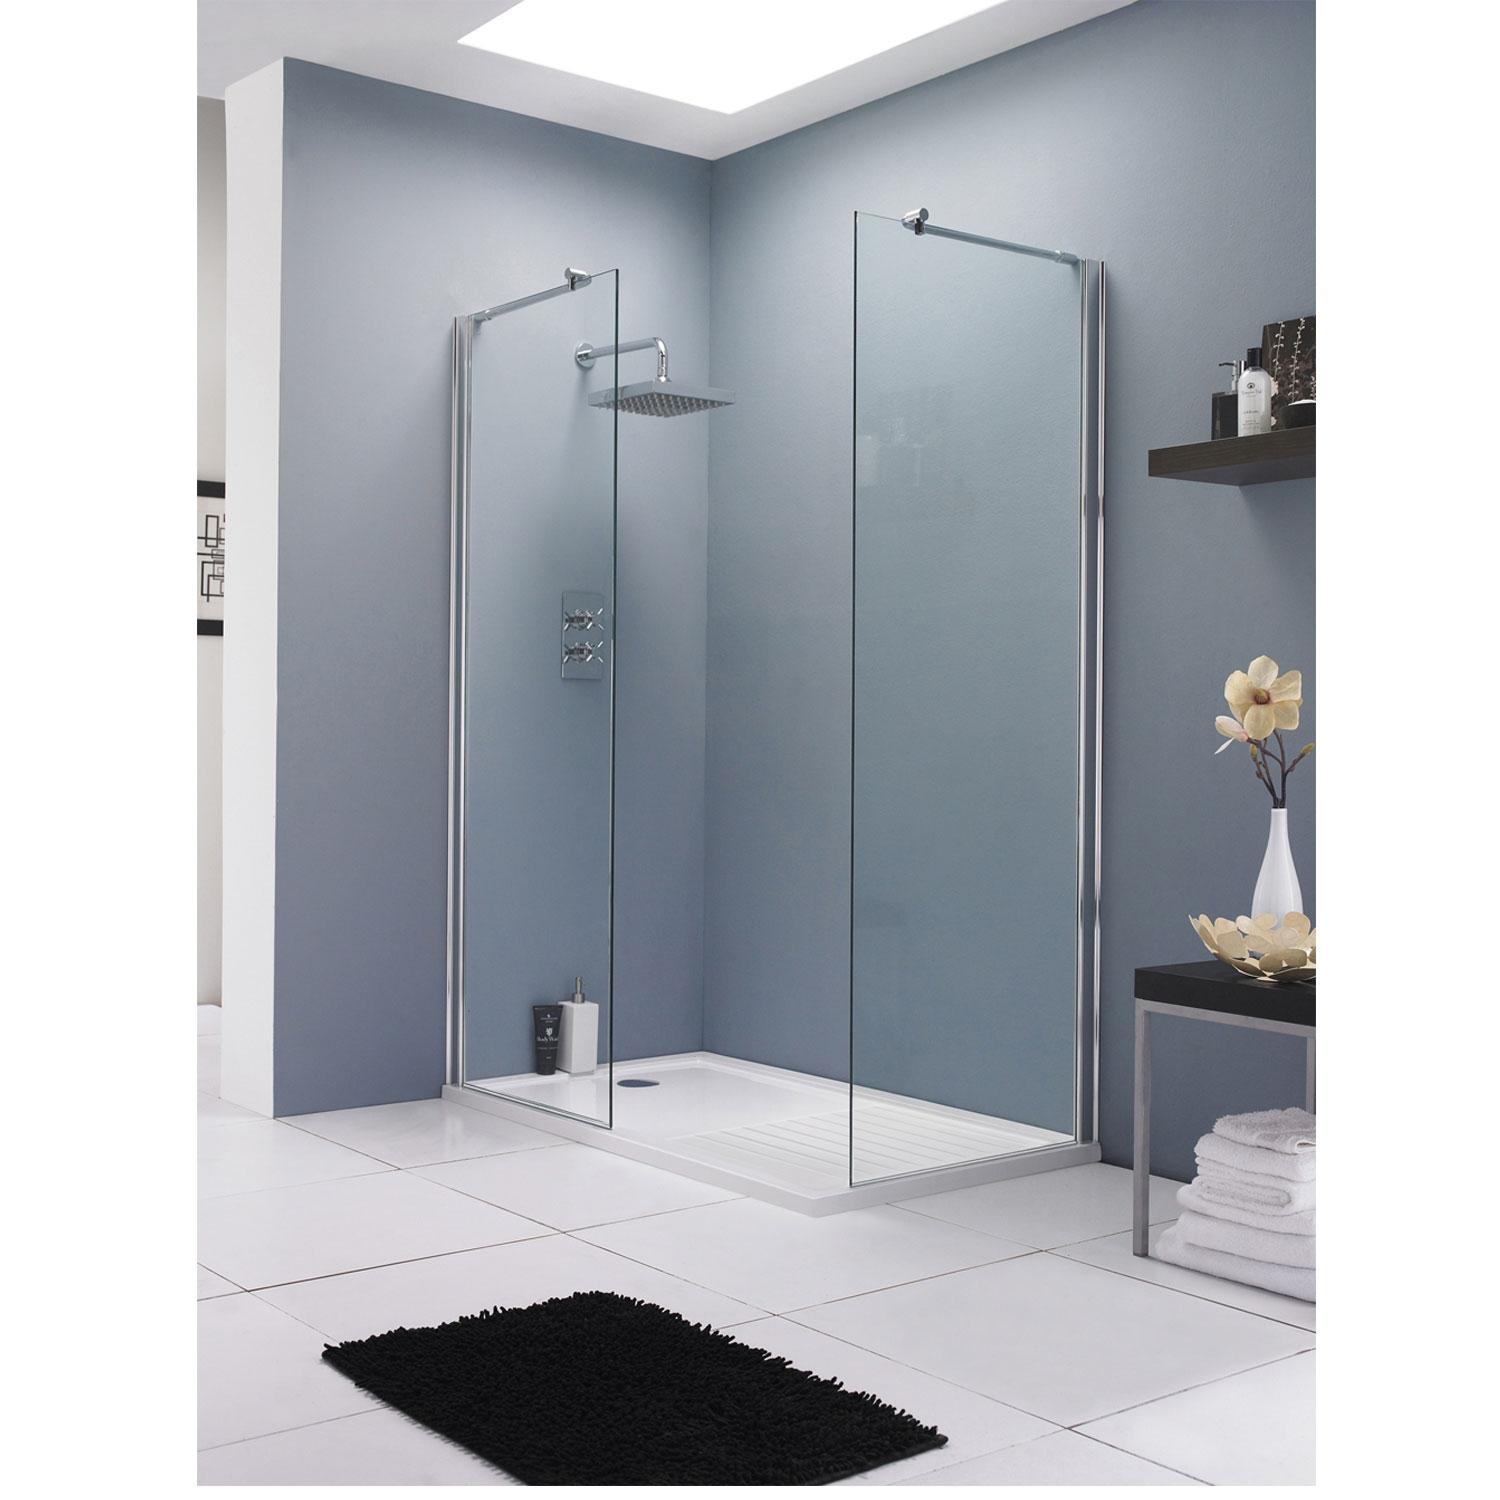 Hudson Reed Wet Room Screen with Support Bar 900mm Wide - 8mm Glass